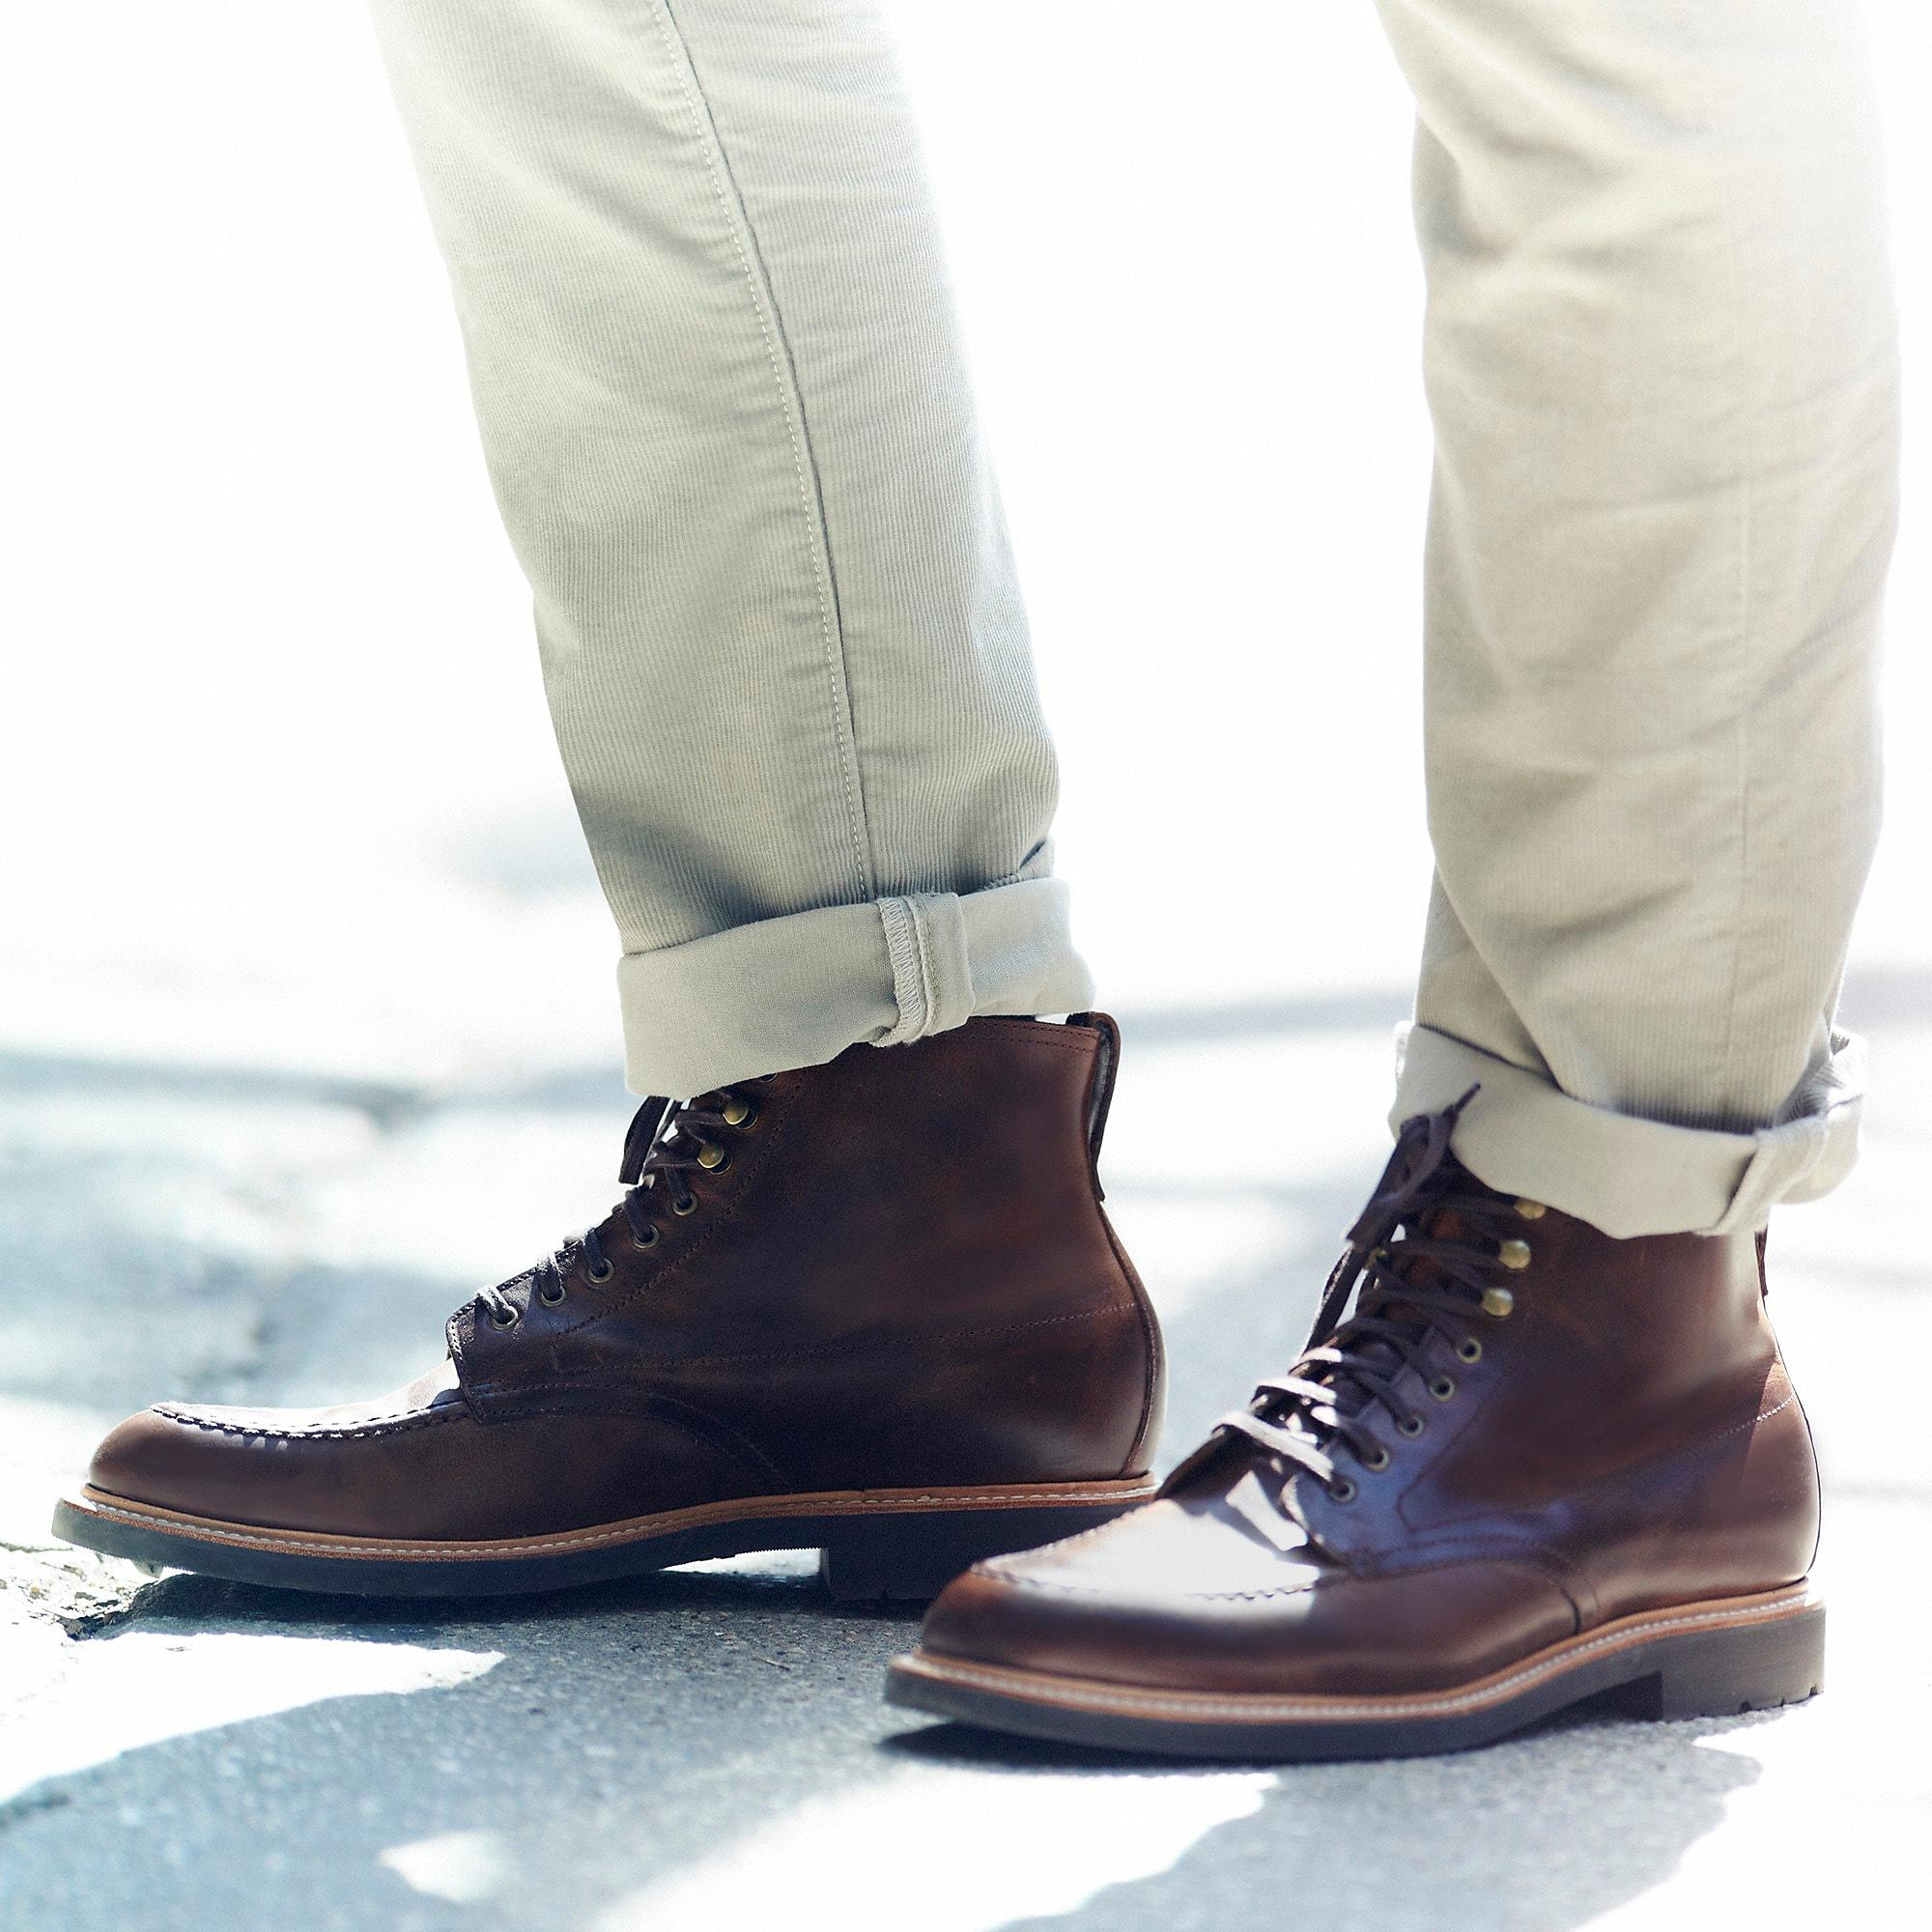 6901cc01bda J.Crew Kenton Leather Pacer Boots in Brown for Men - Lyst